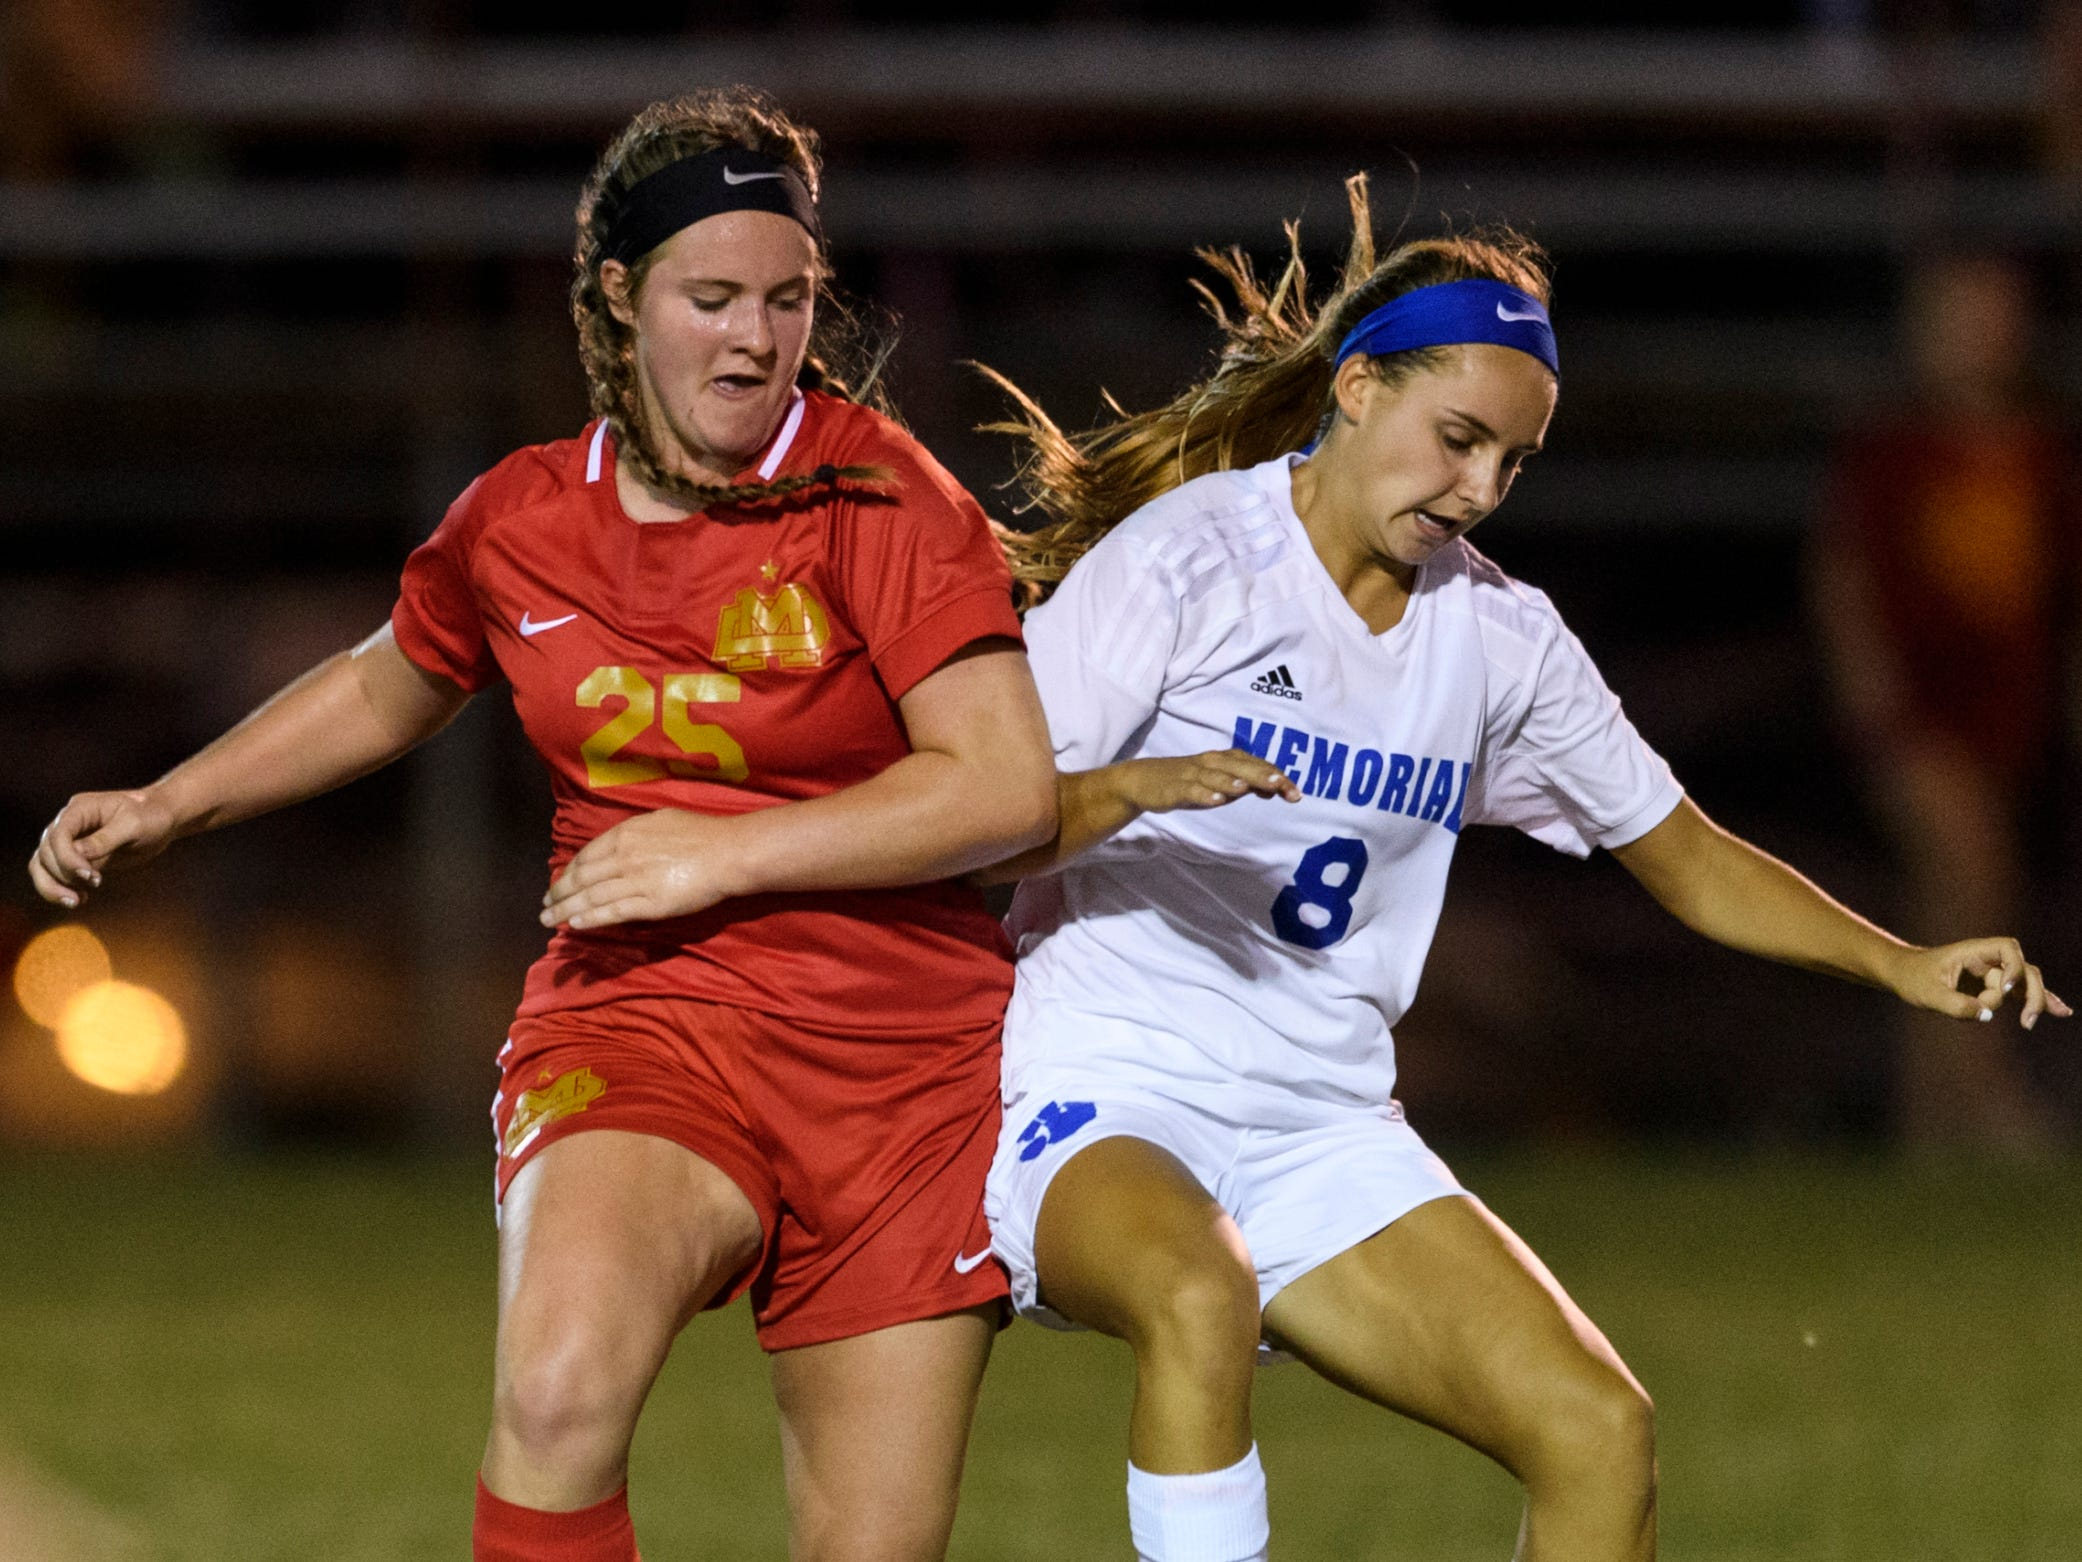 Mater Dei's Macey Adler (25) and Memorial's Kelly Bersch (8) fight for possession during the match at the EVSC Soccer Fields in Evansville, Ind., Monday, Aug. 20, 2018. The Tigers defeated the Wildcats 4-0.